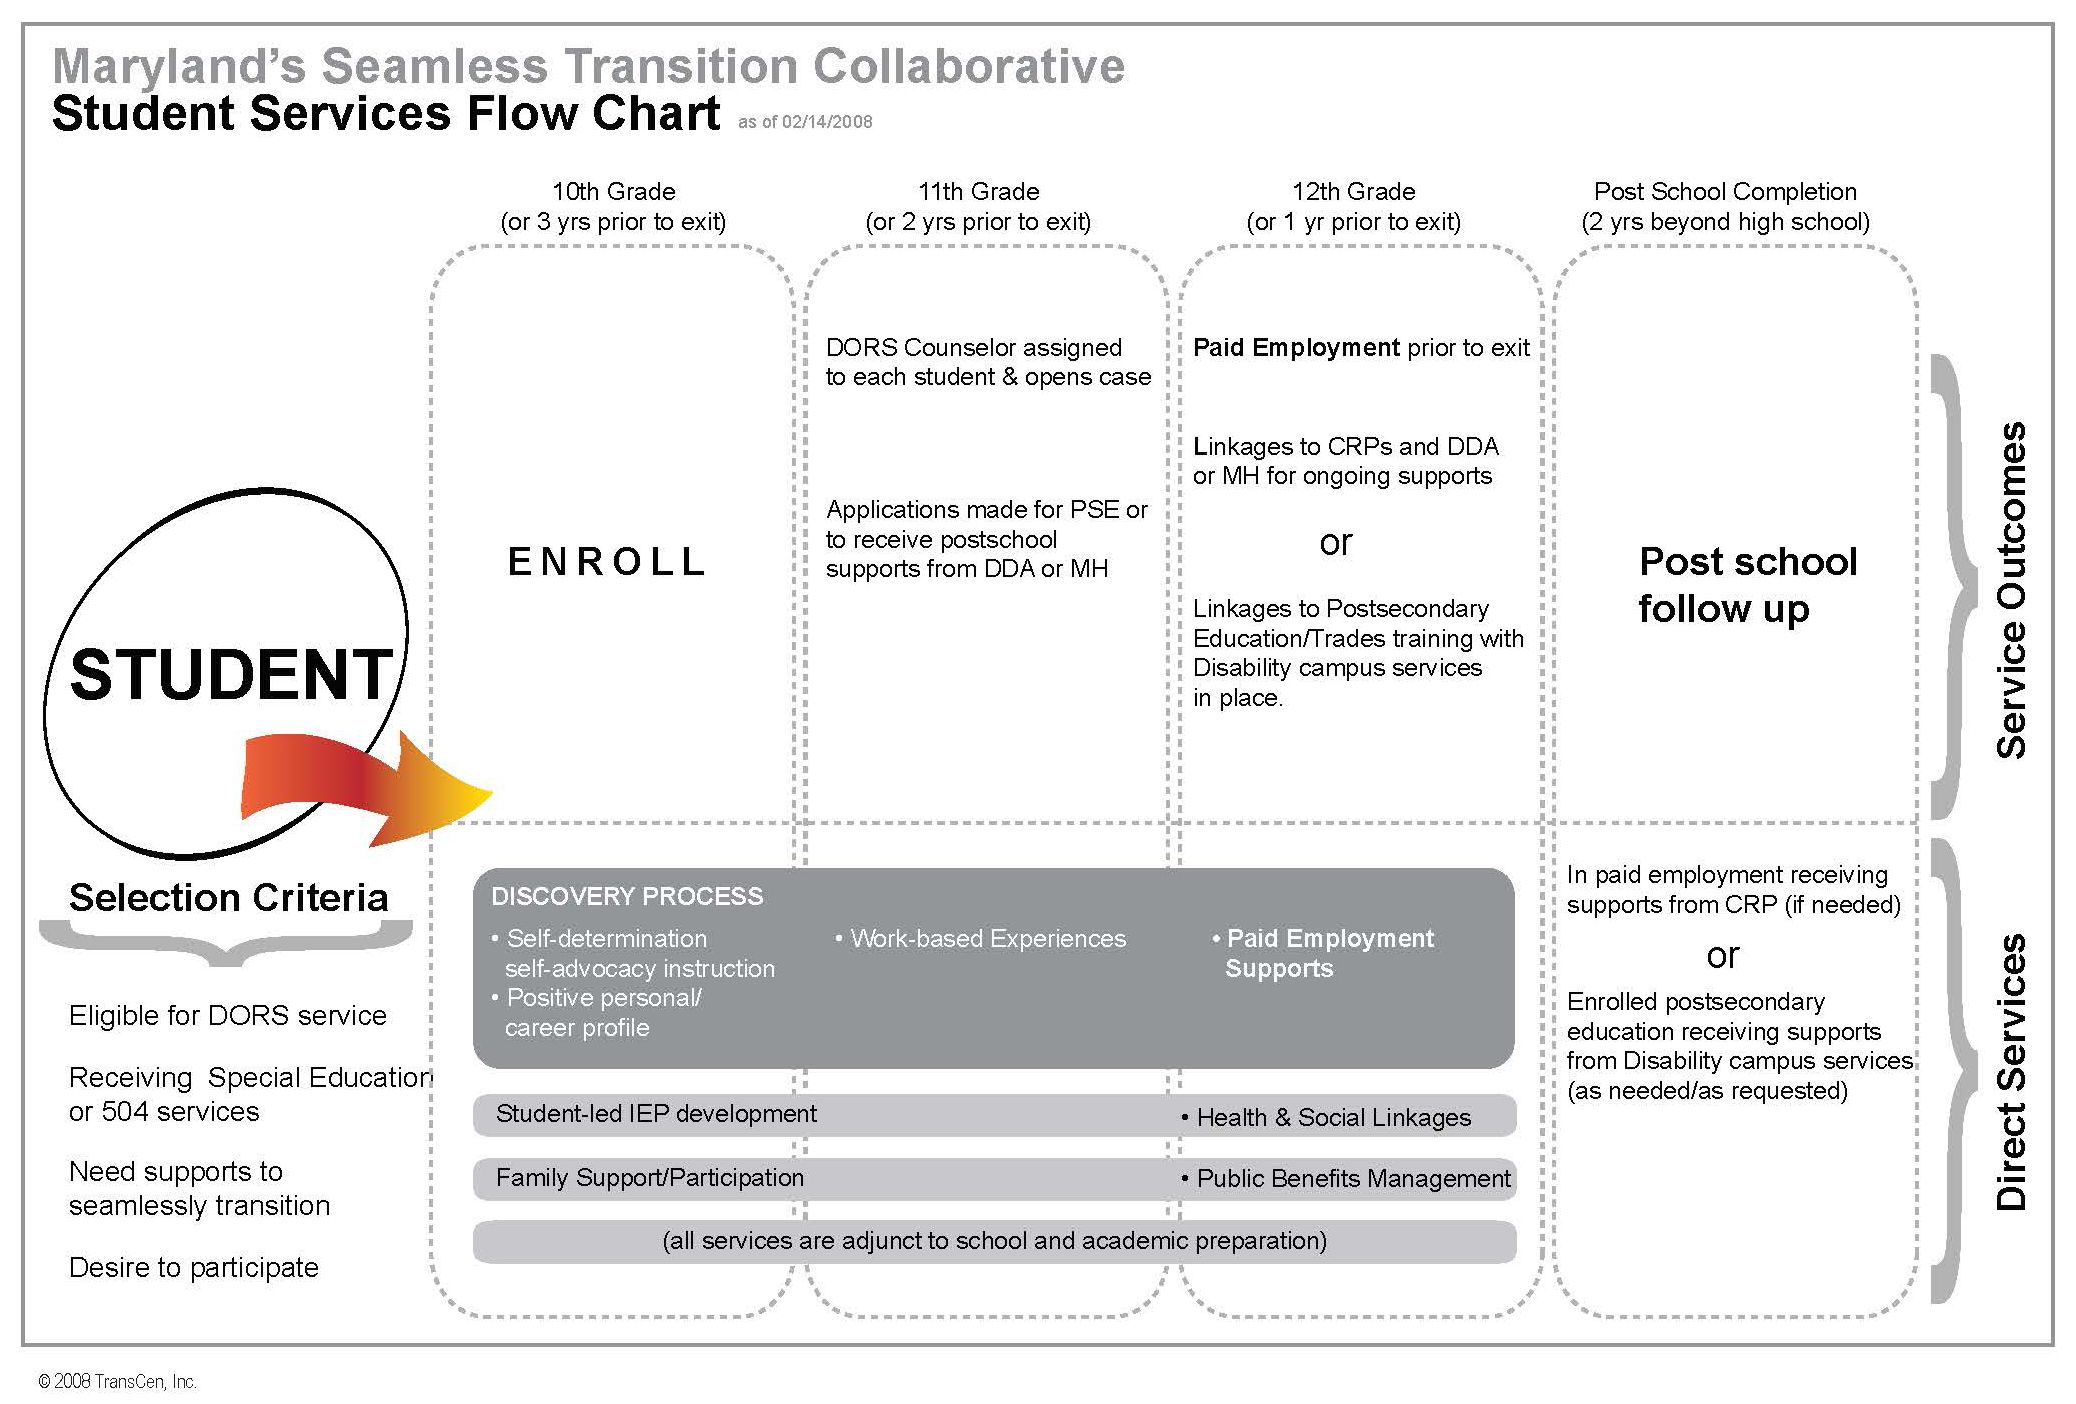 Maryland Seamless Transition Collaborative Student Services Flow